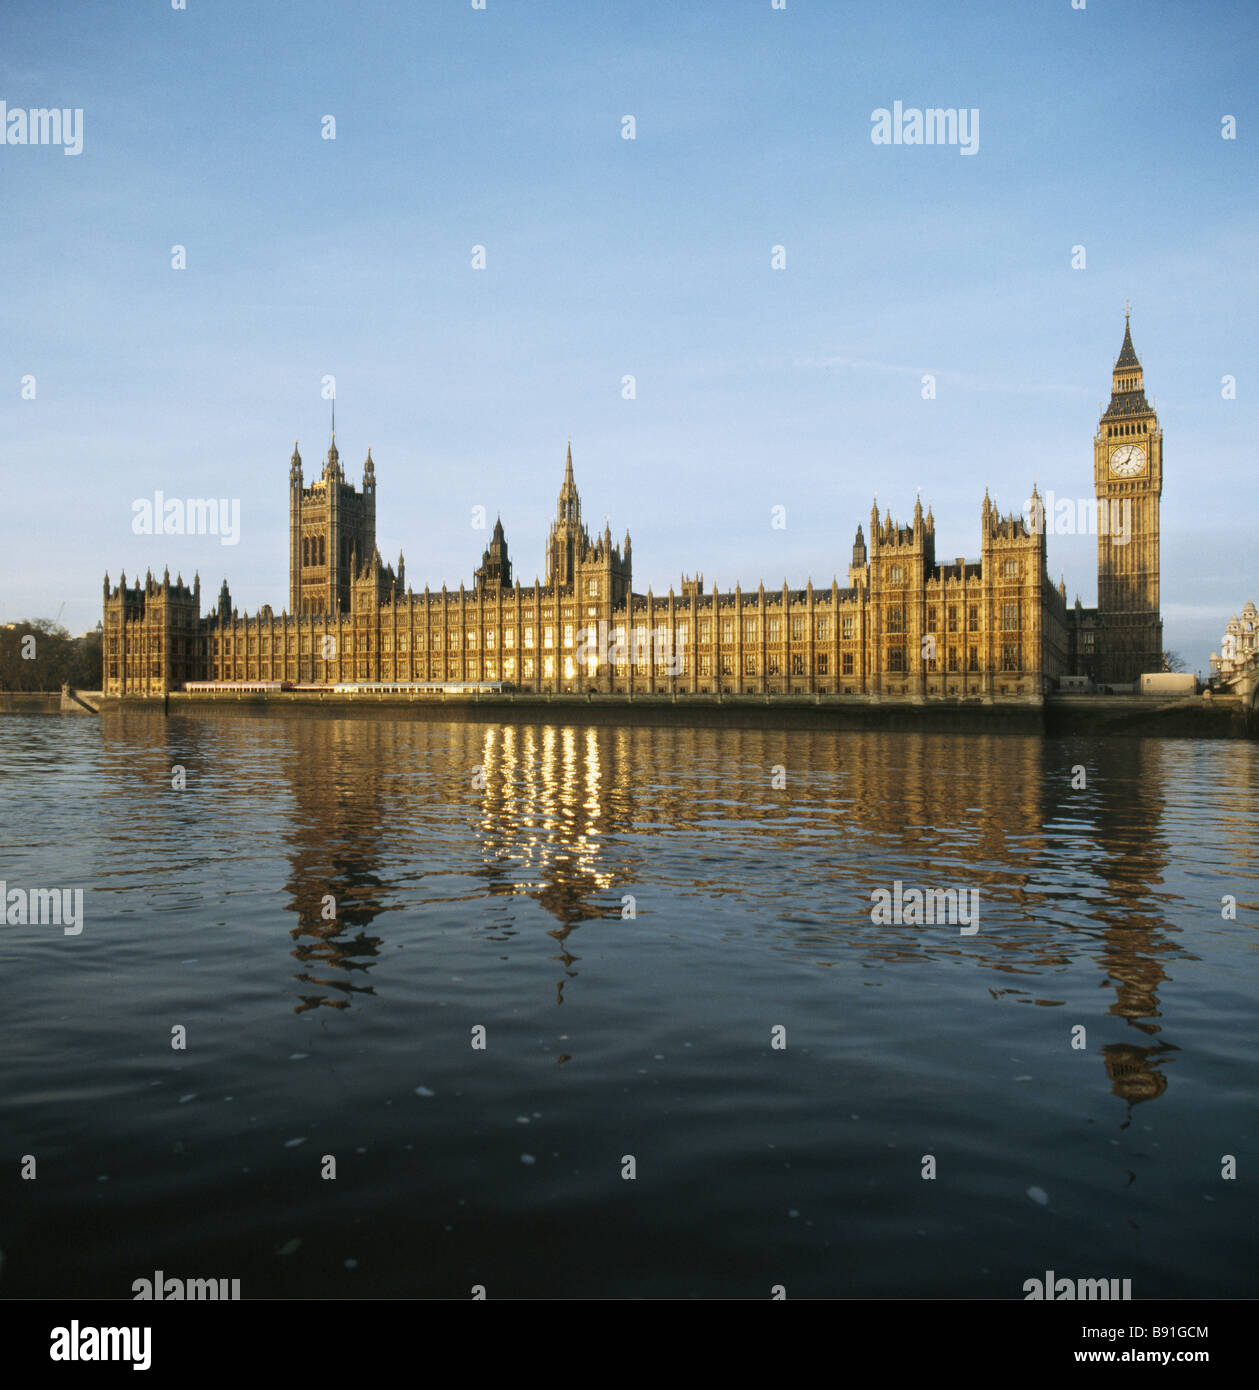 Palace of Westminster, London, from the river Thames. 1836-1847 by Sir Charles Barry and Augustus Welby Pugin. - Stock Image